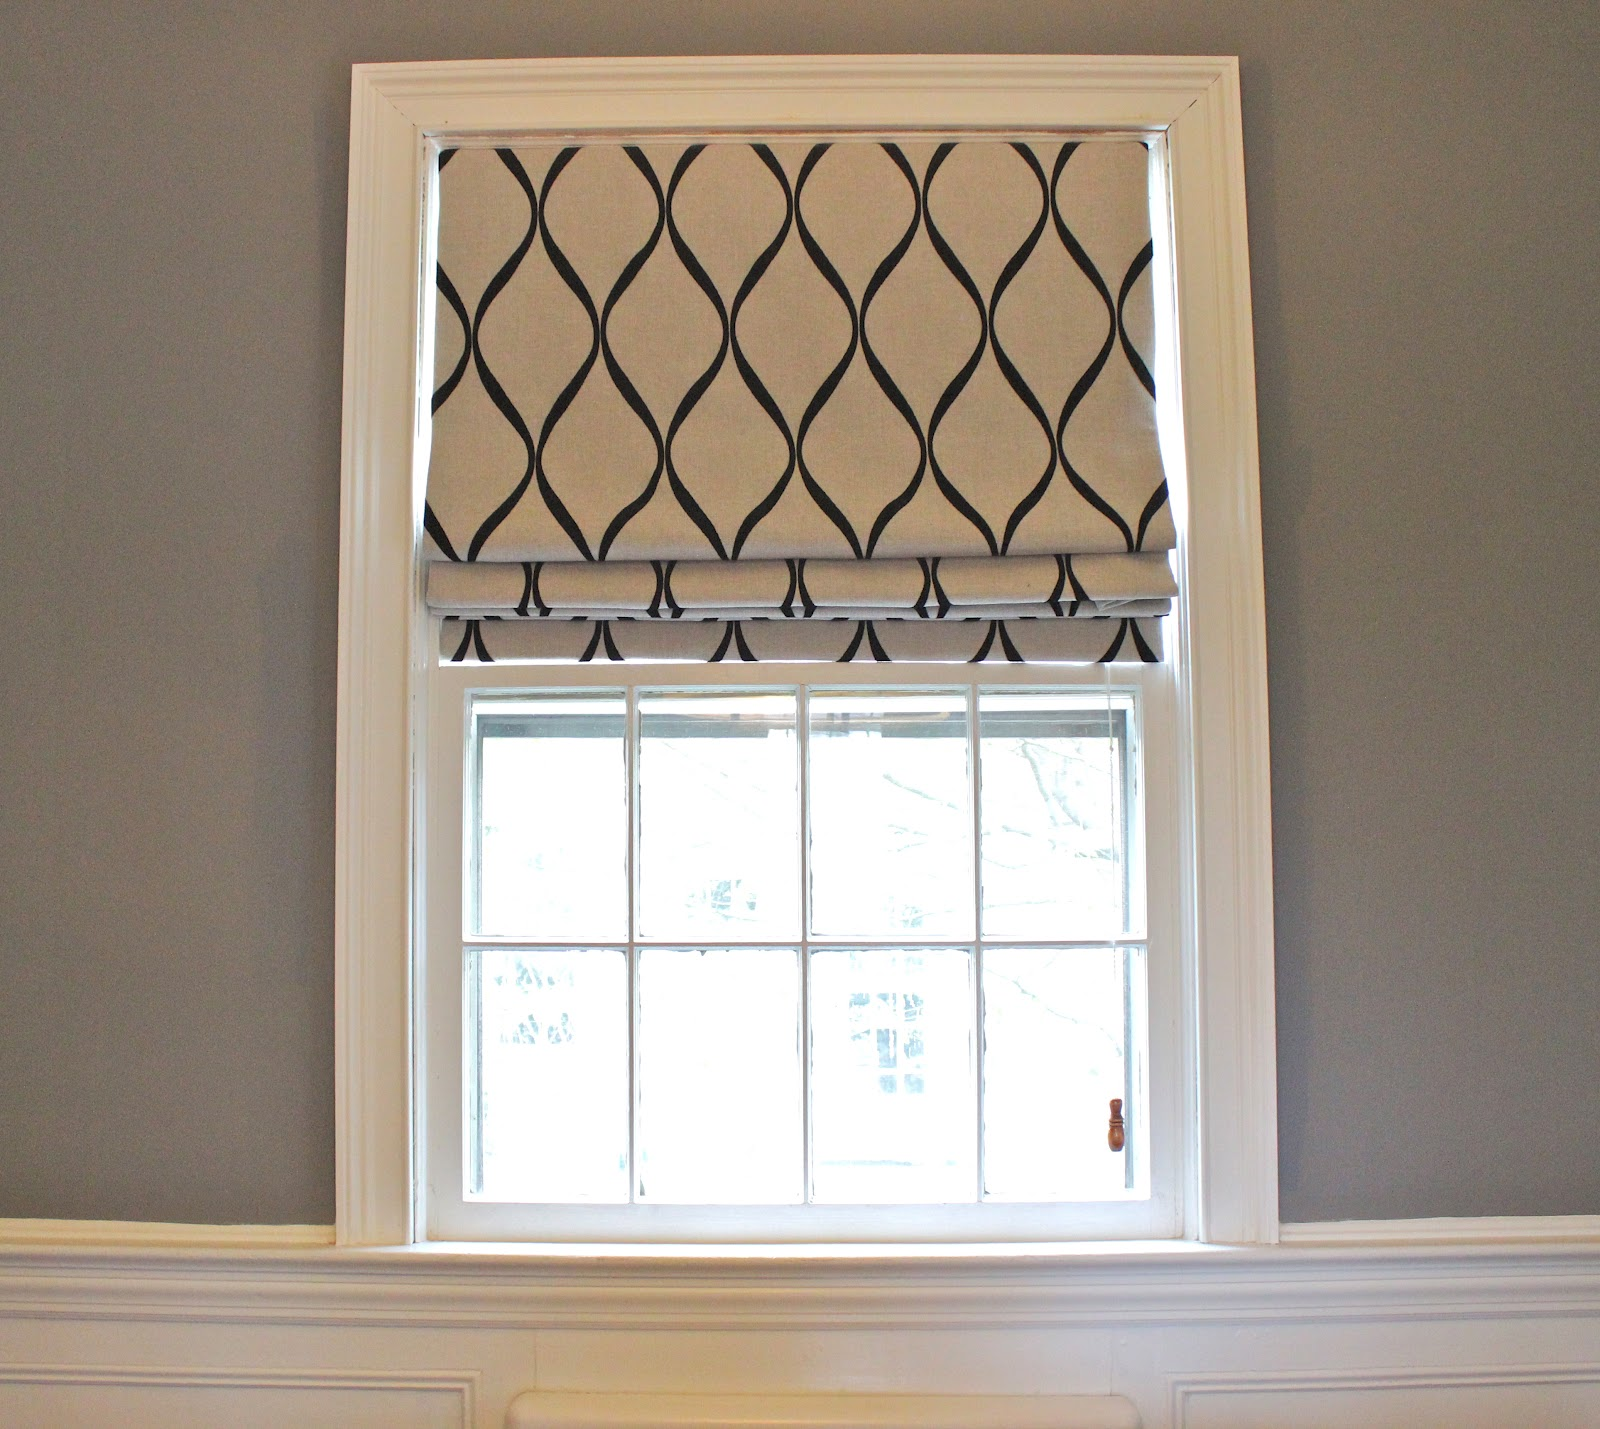 Dining Room: Roman Shades Or Blinds